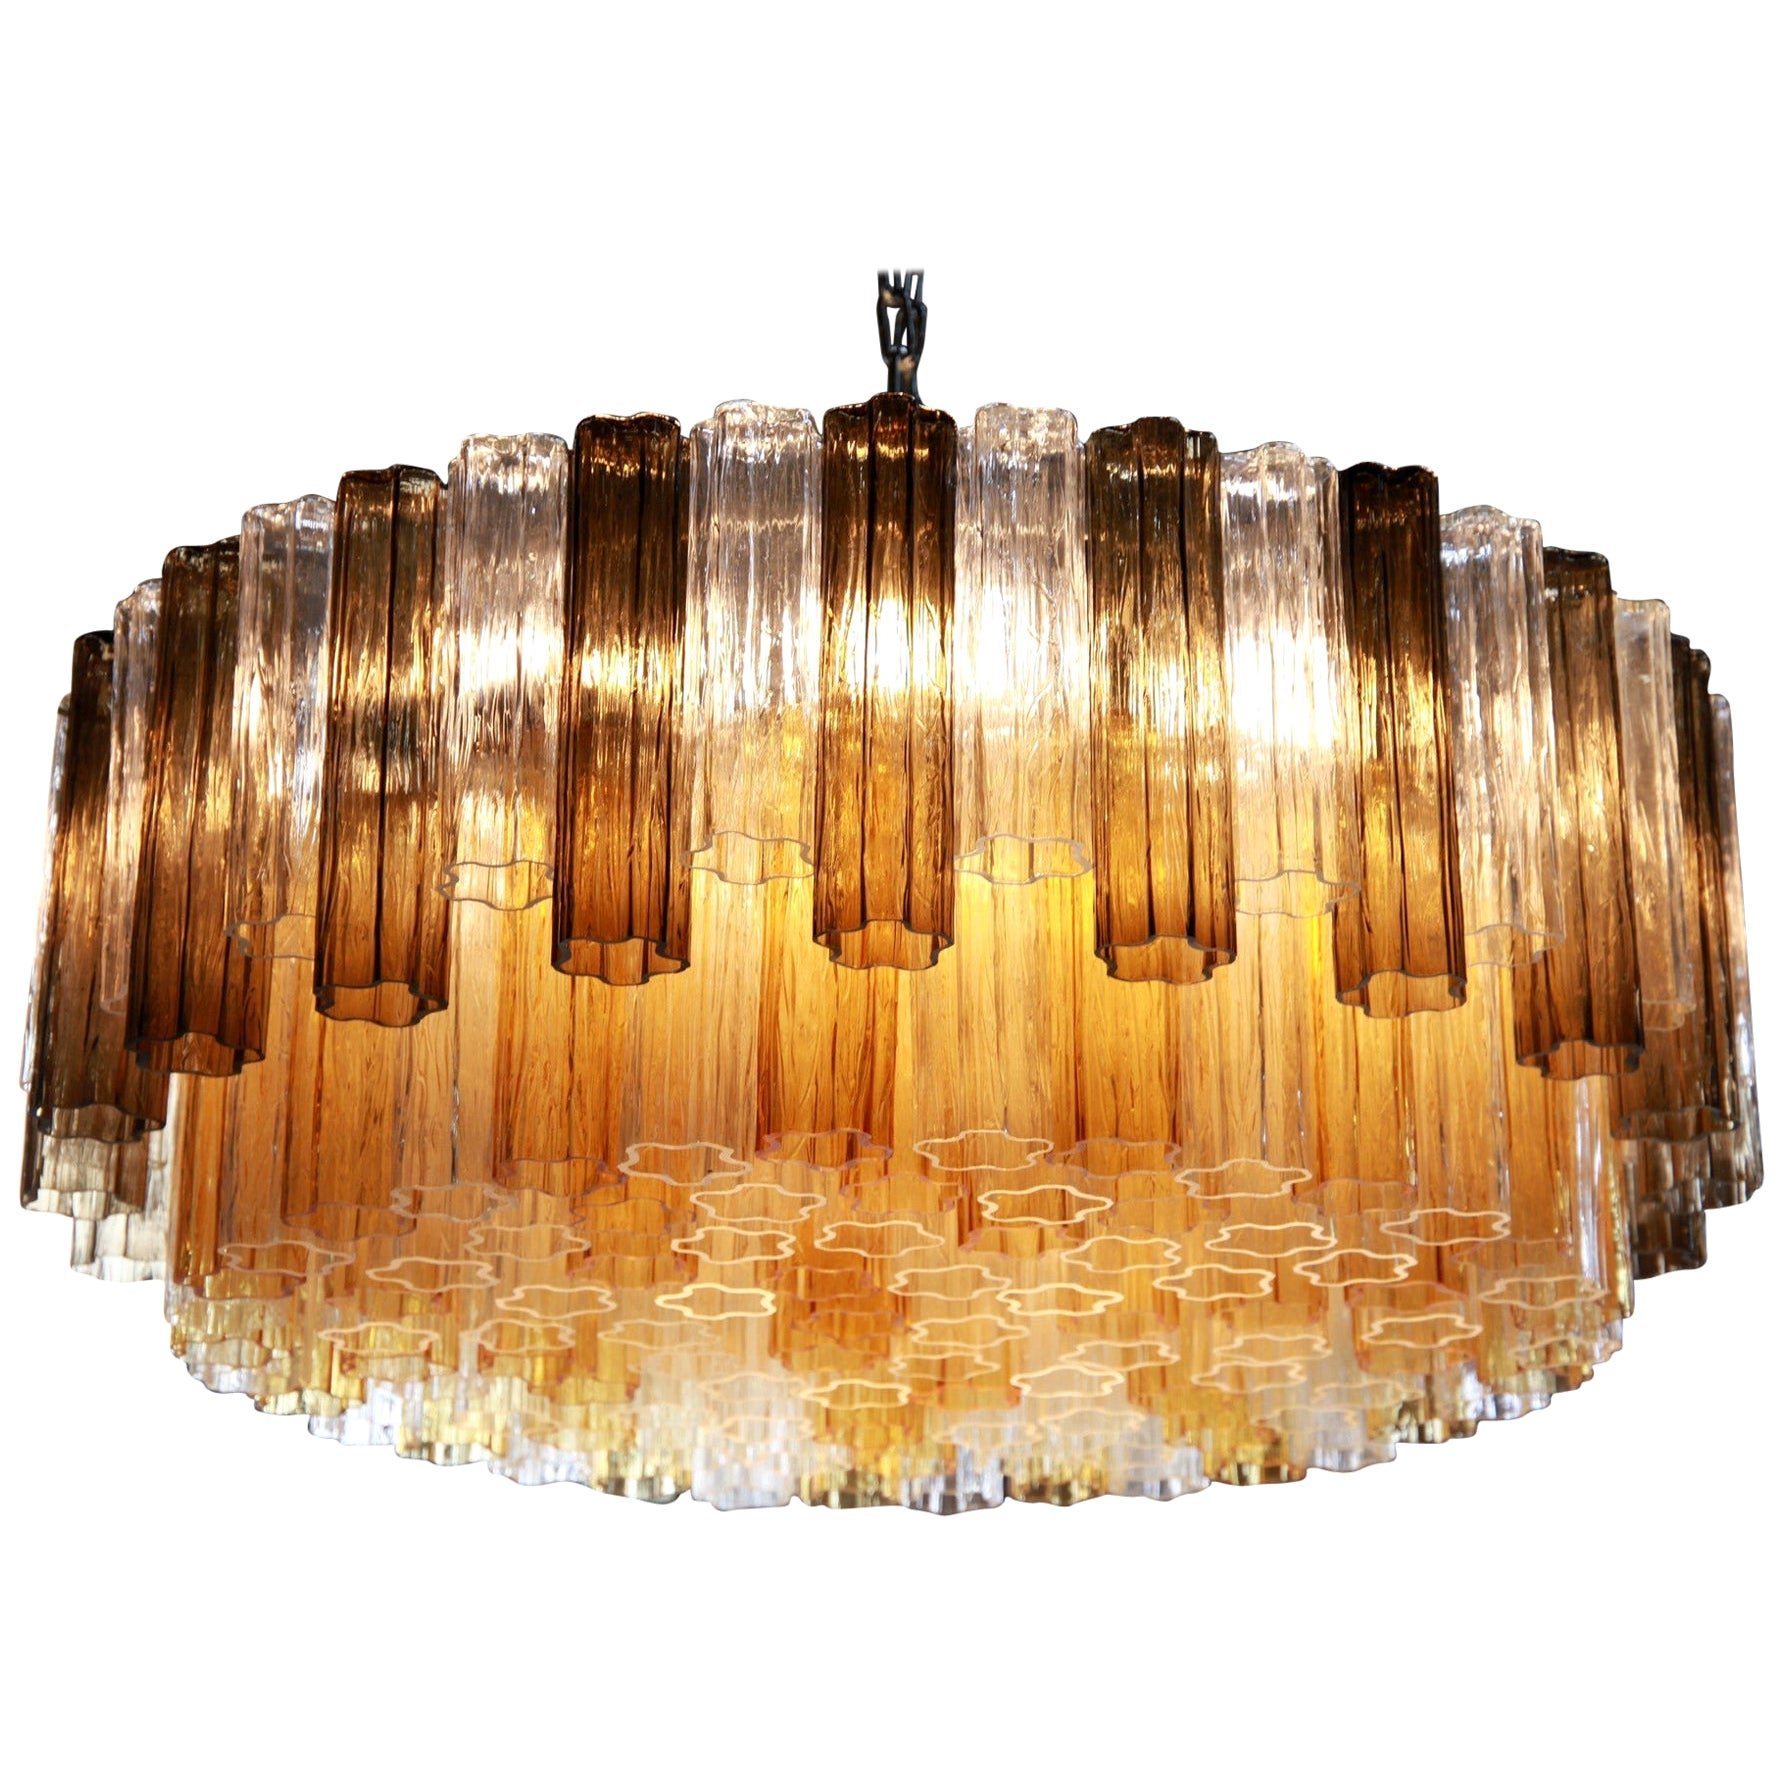 Two Tiers Murano Chandelier, Tronchi Elements in Clear and Amber and Gray Kalmar